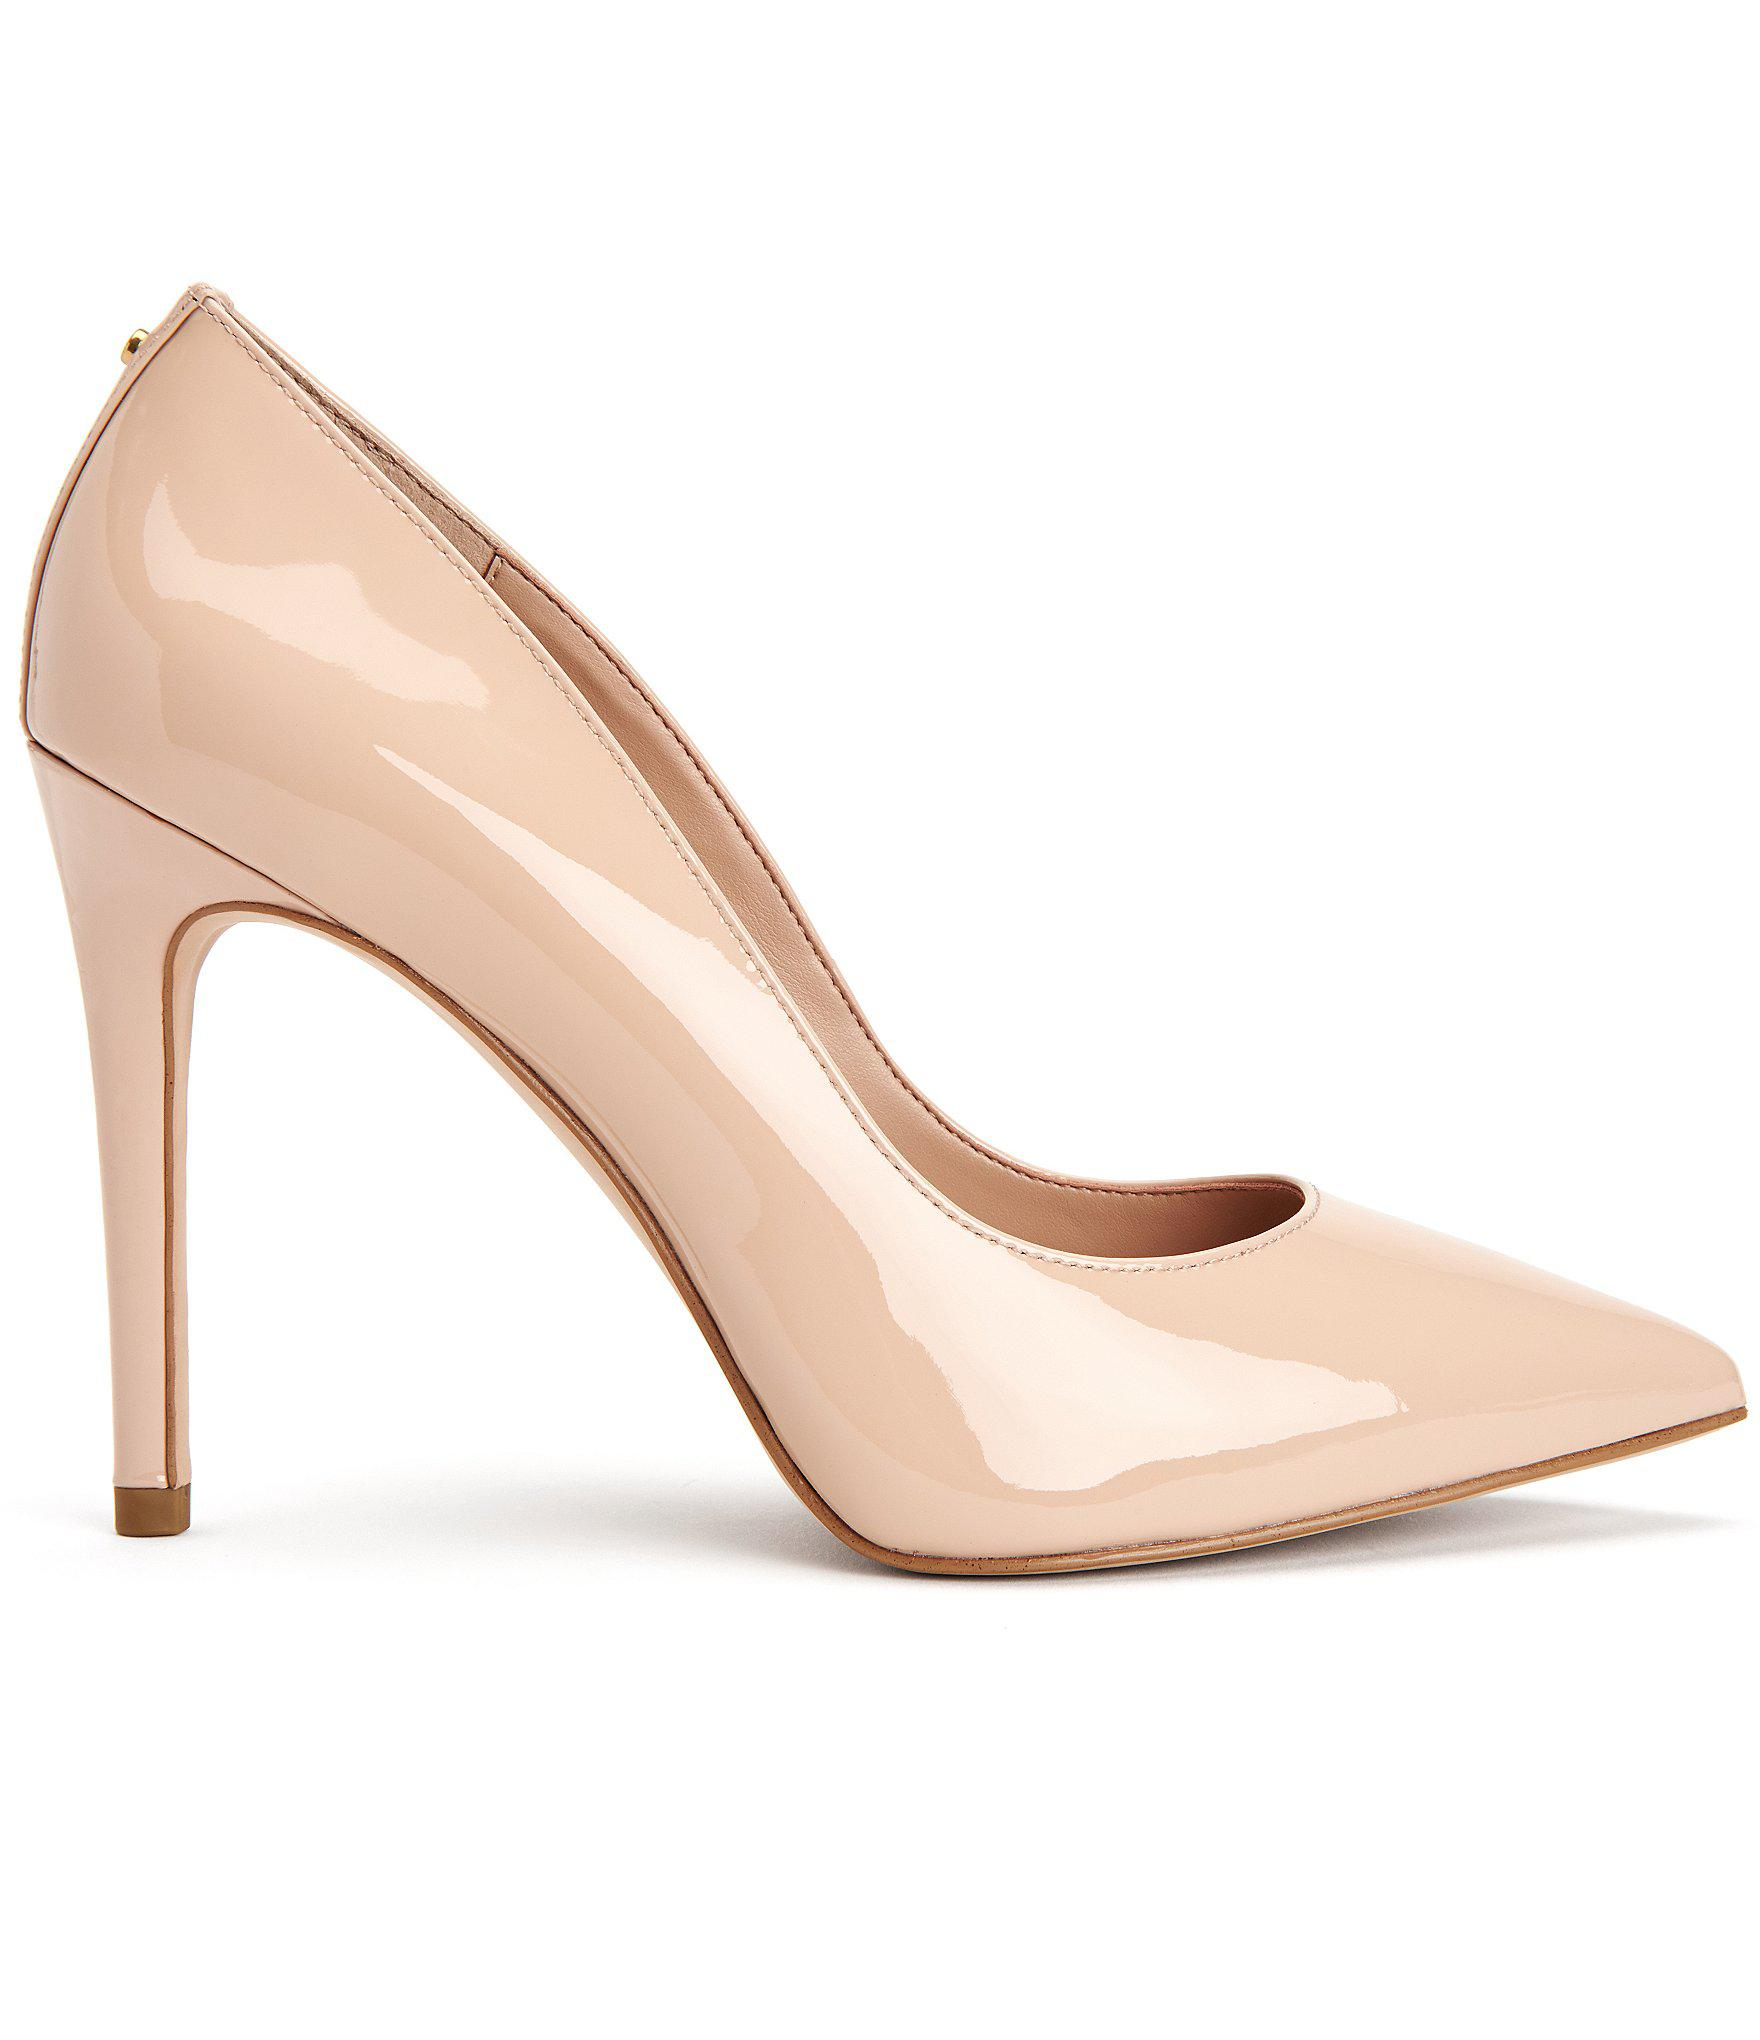 b7ed4aace0 BCBGeneration - Natural Heidi Pointed-toe Patent Pumps - Lyst. View  fullscreen